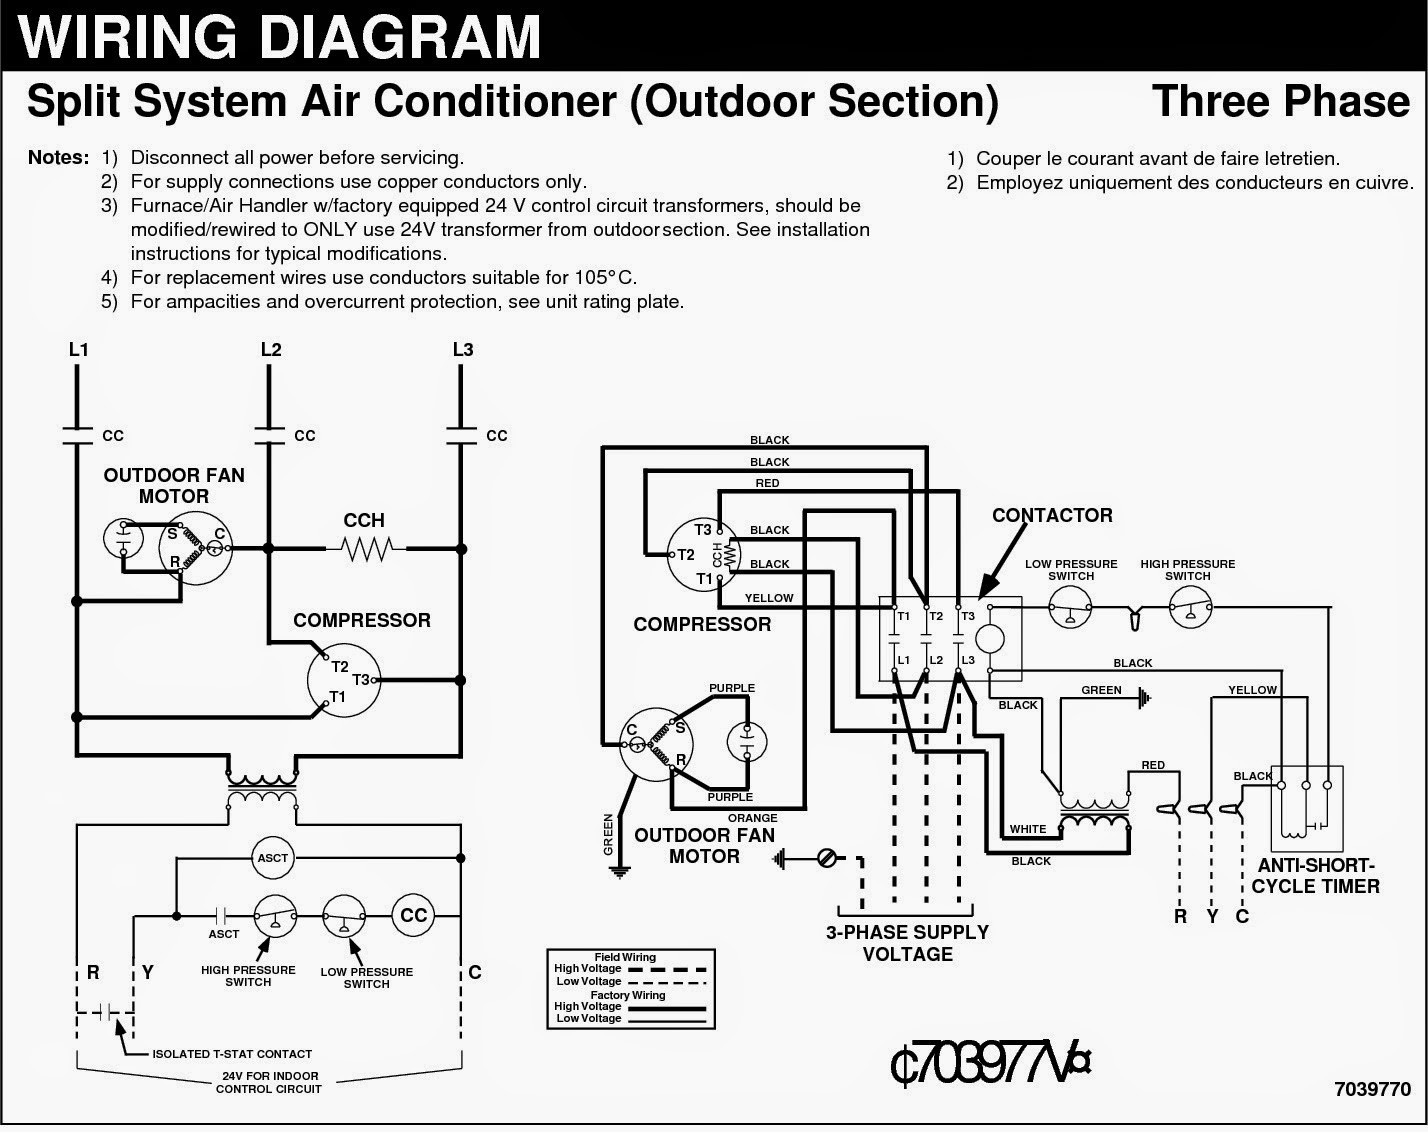 3 Phase Motor Control Panel Wiring Diagram Cooling Fan Electrical Diagrams For Air Conditioning Systems